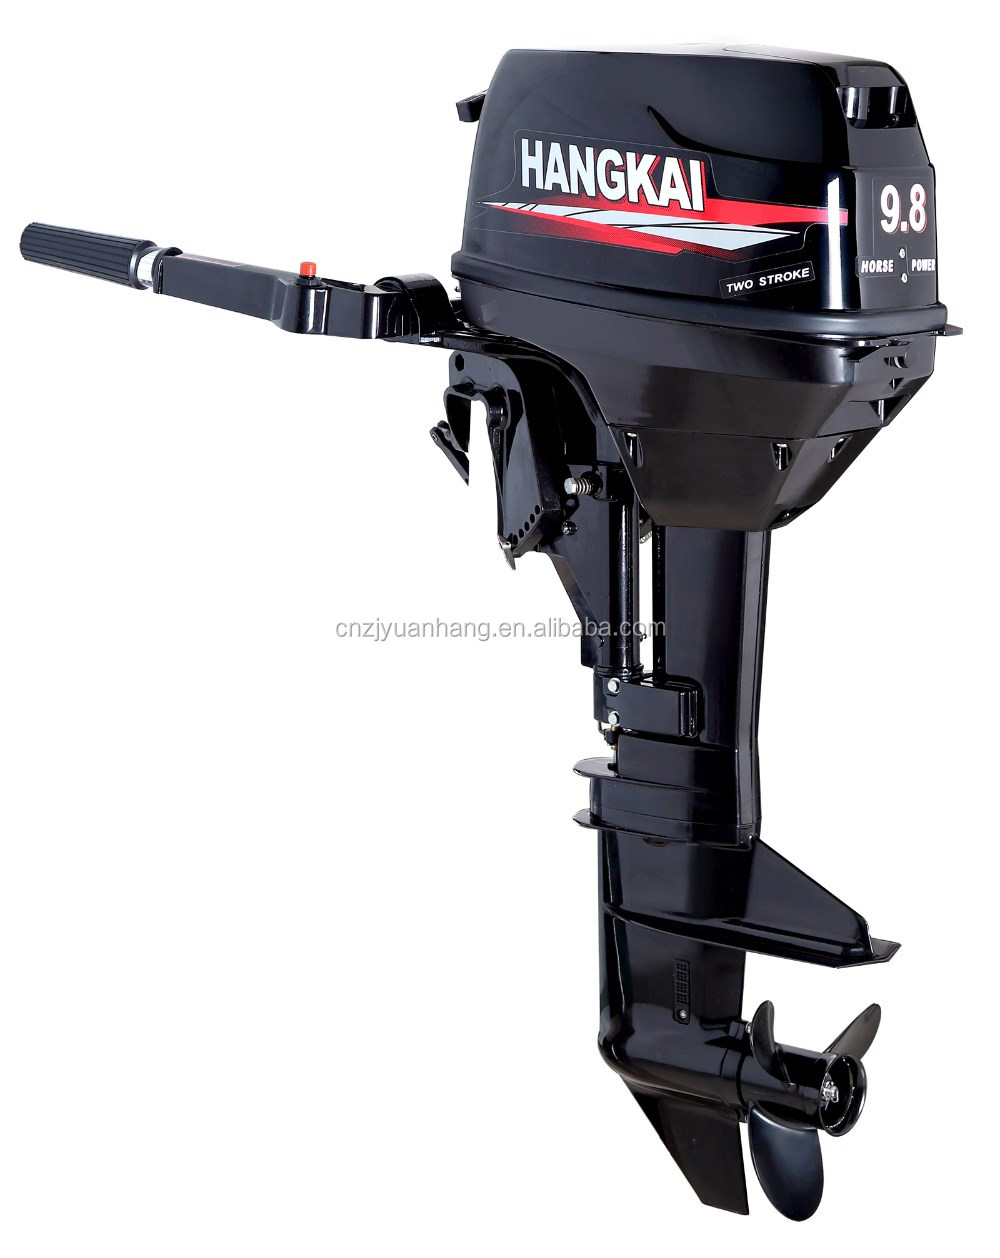 New Condition 2 Stroke Boat Outboard Motor Hangkai